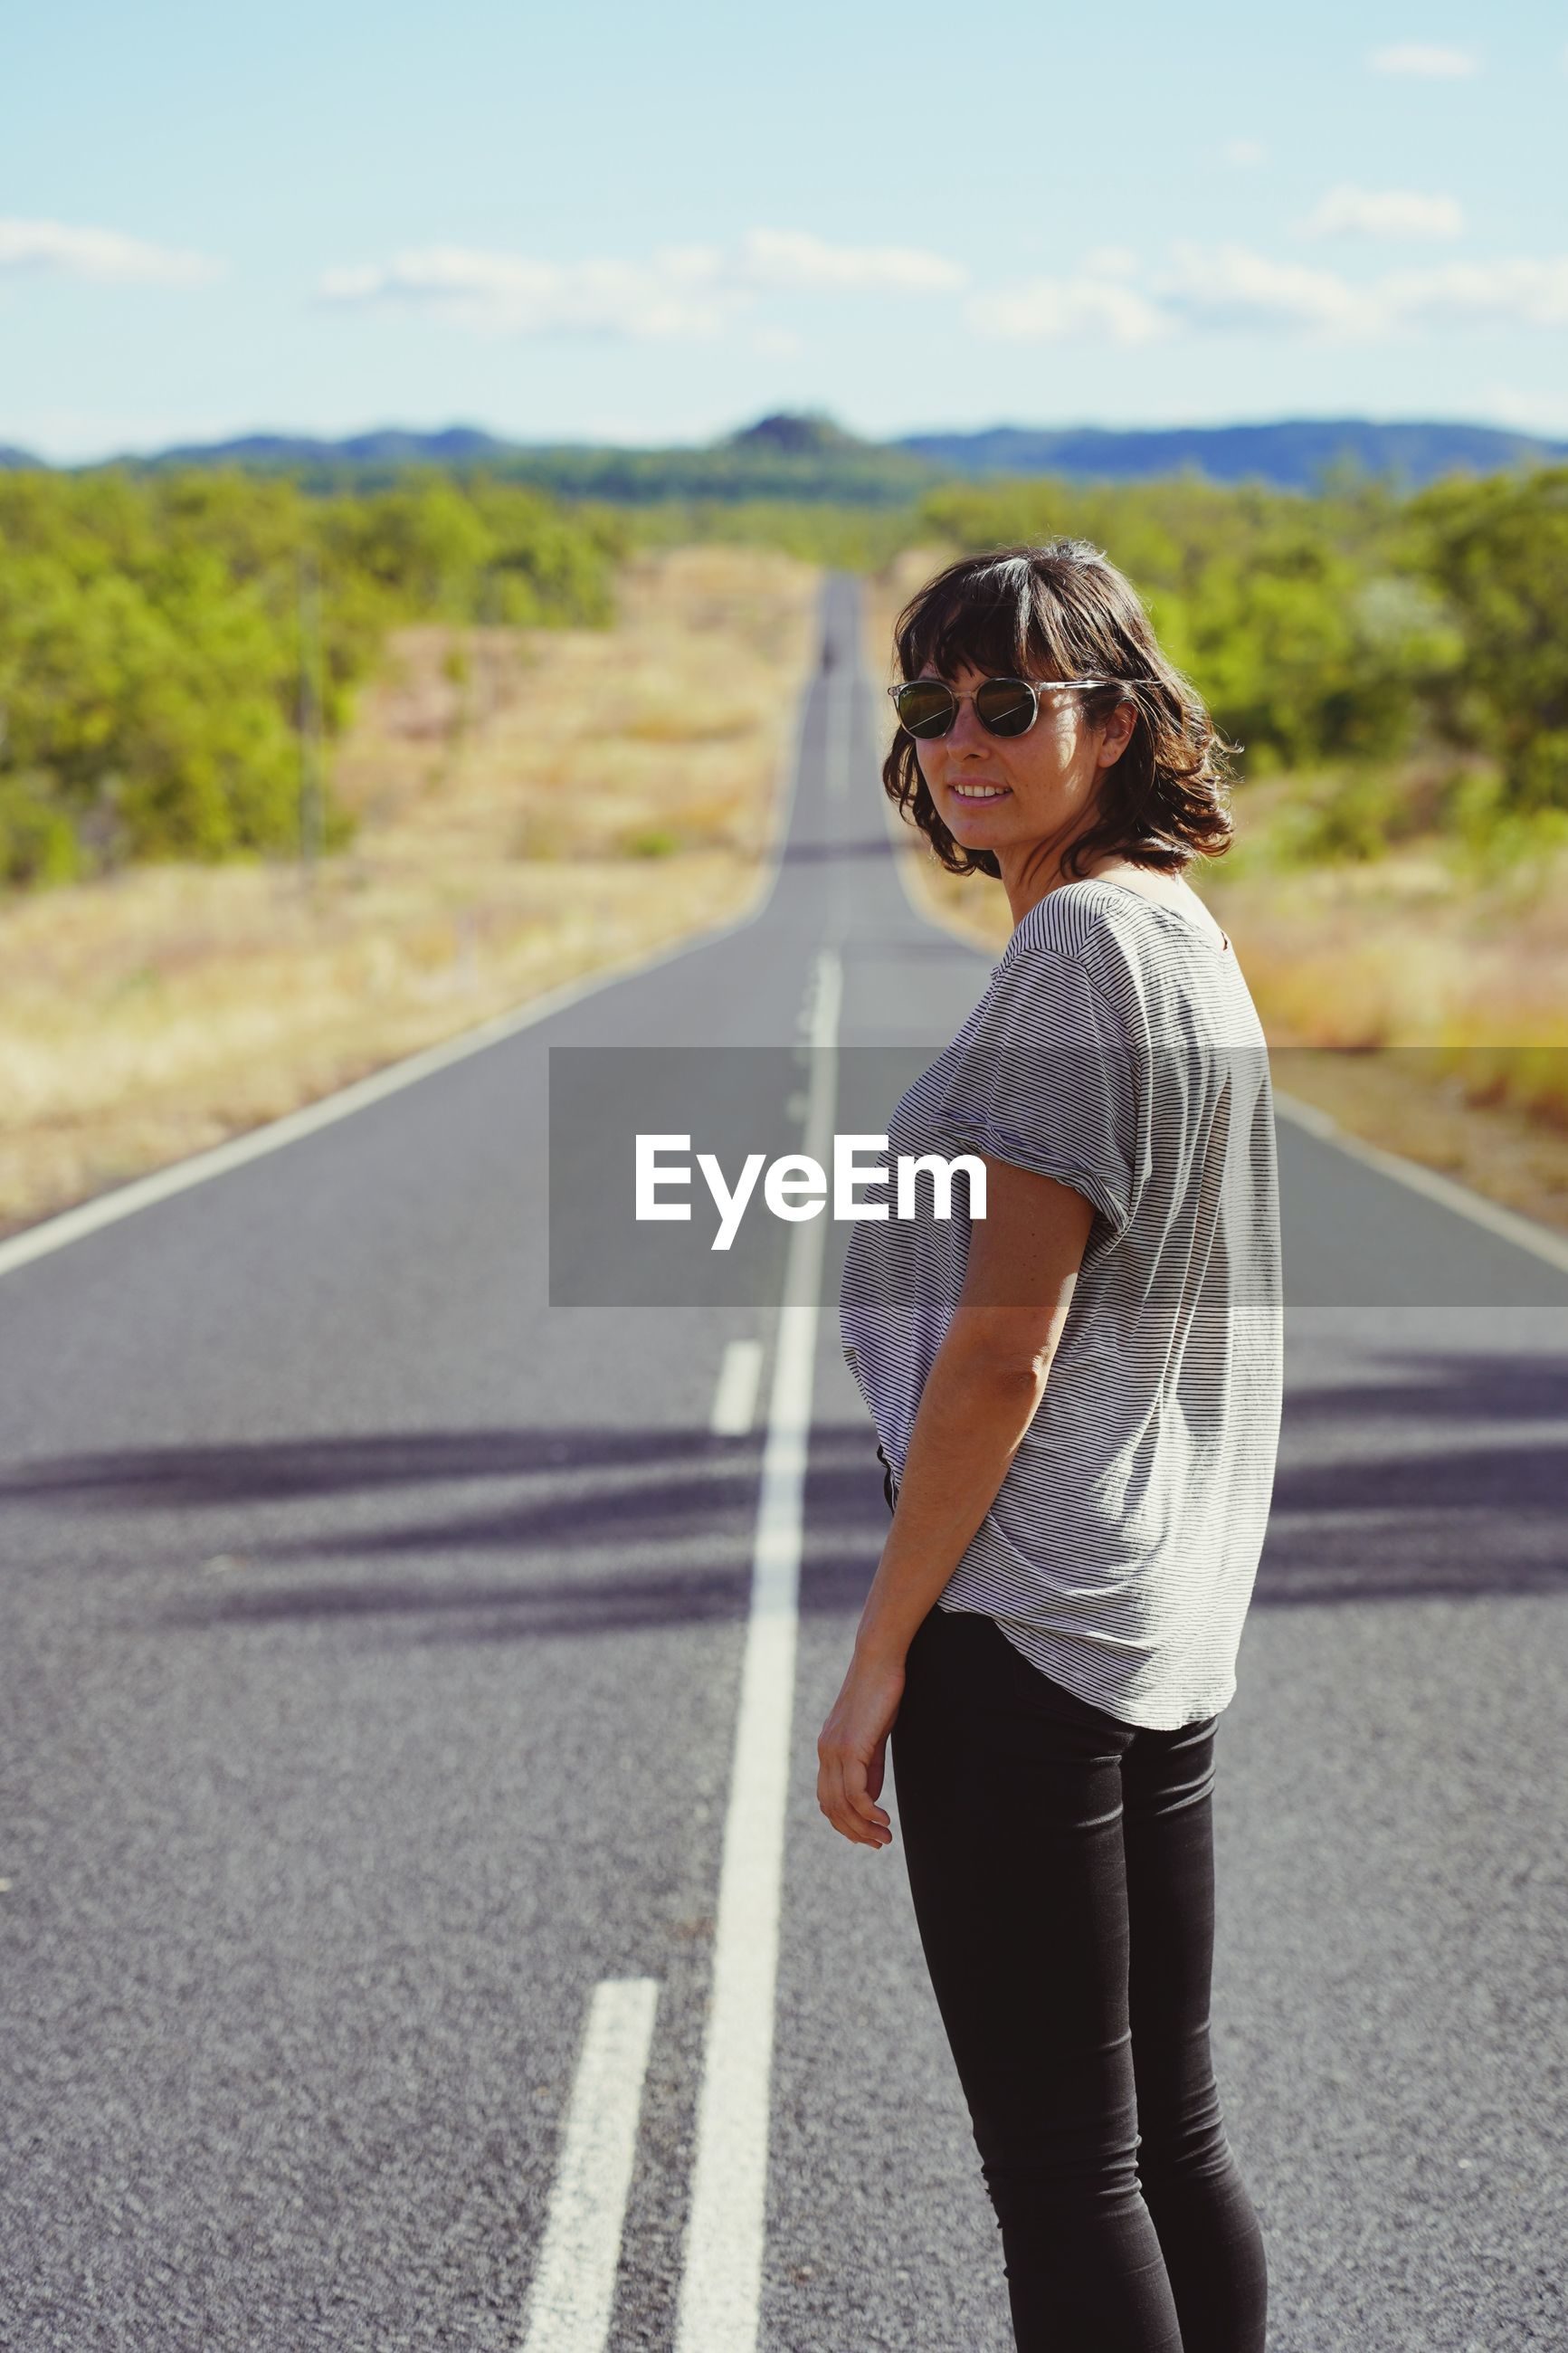 Portrait of woman wearing sunglasses standing on road